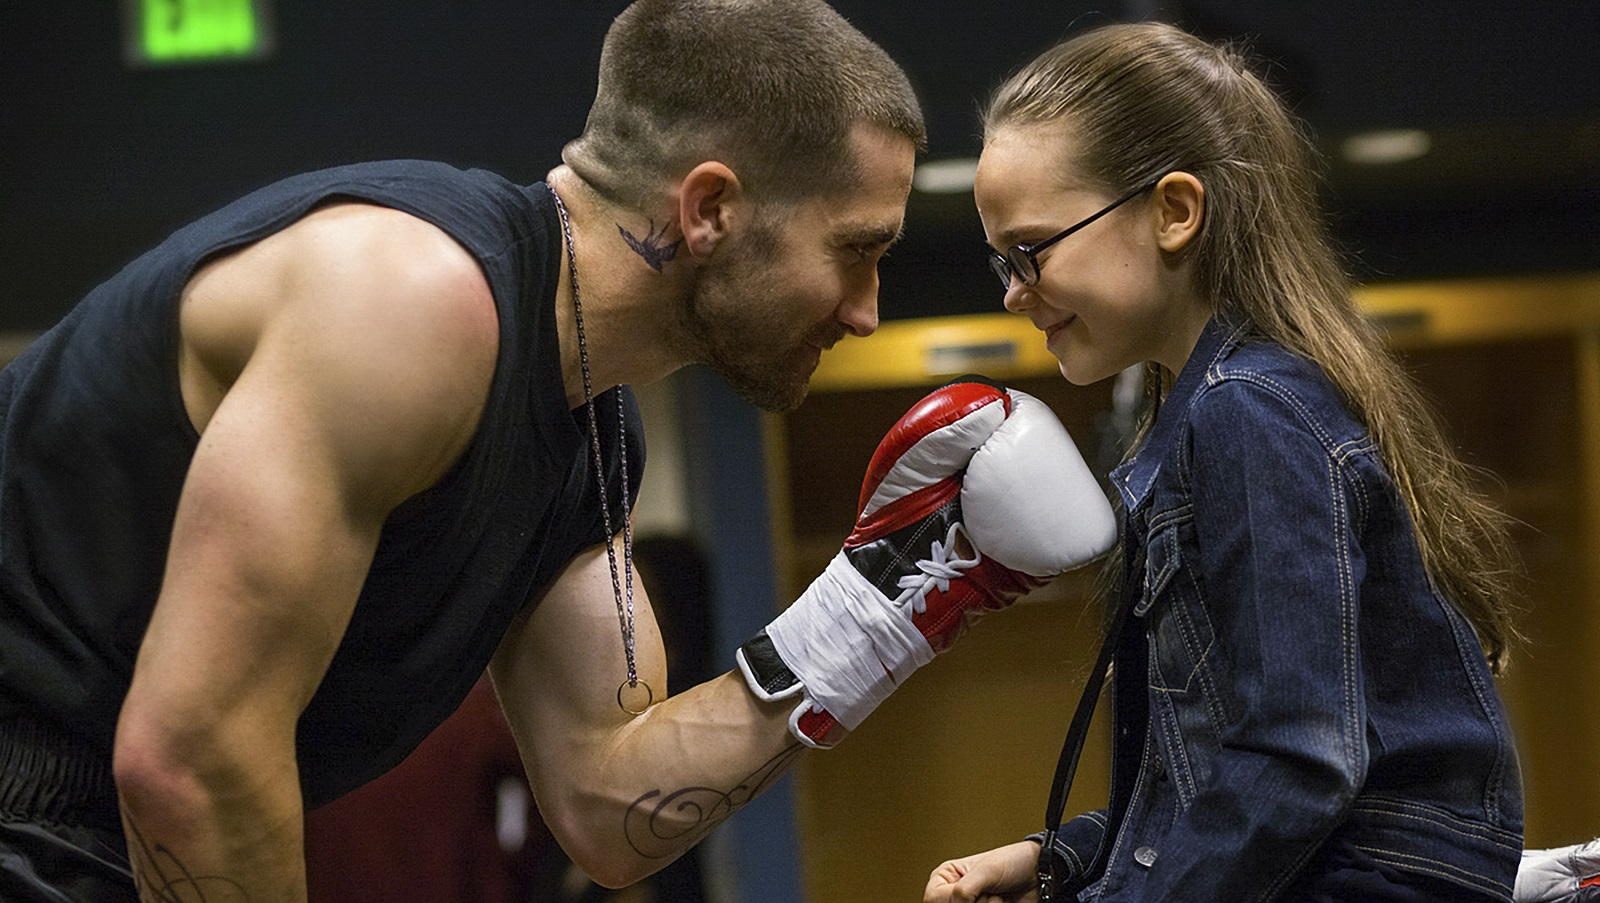 Jake Gyllenhaal and Oona Laurence star in in 'Southpaw,' one of Jeff Simon's five recommendations for the weekend. (Scott Garfield/The Weinstein Company)